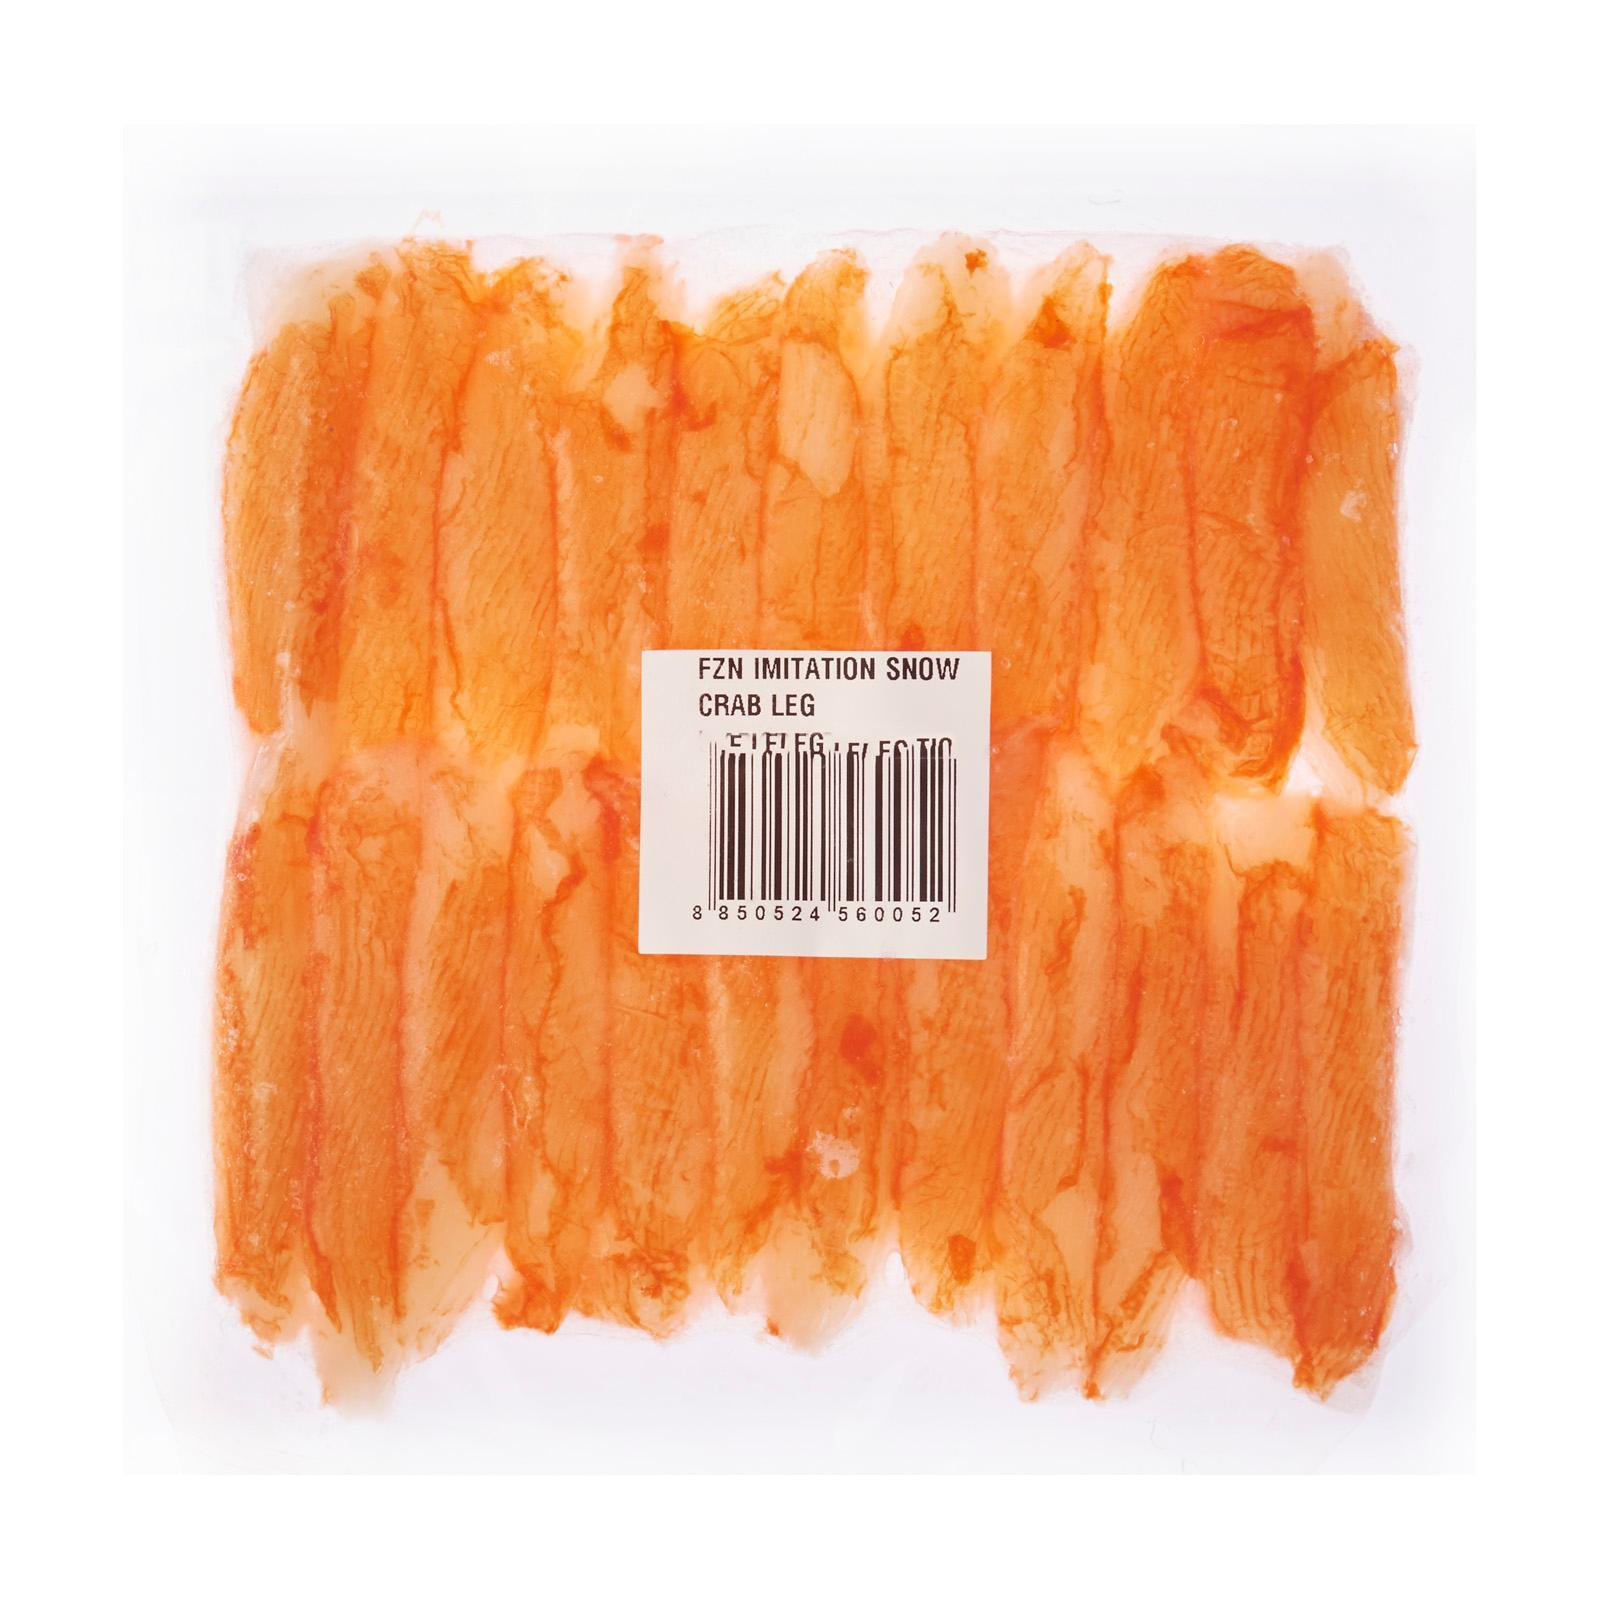 Ehf Imitation Snow Crab Leg - Frozen By Redmart